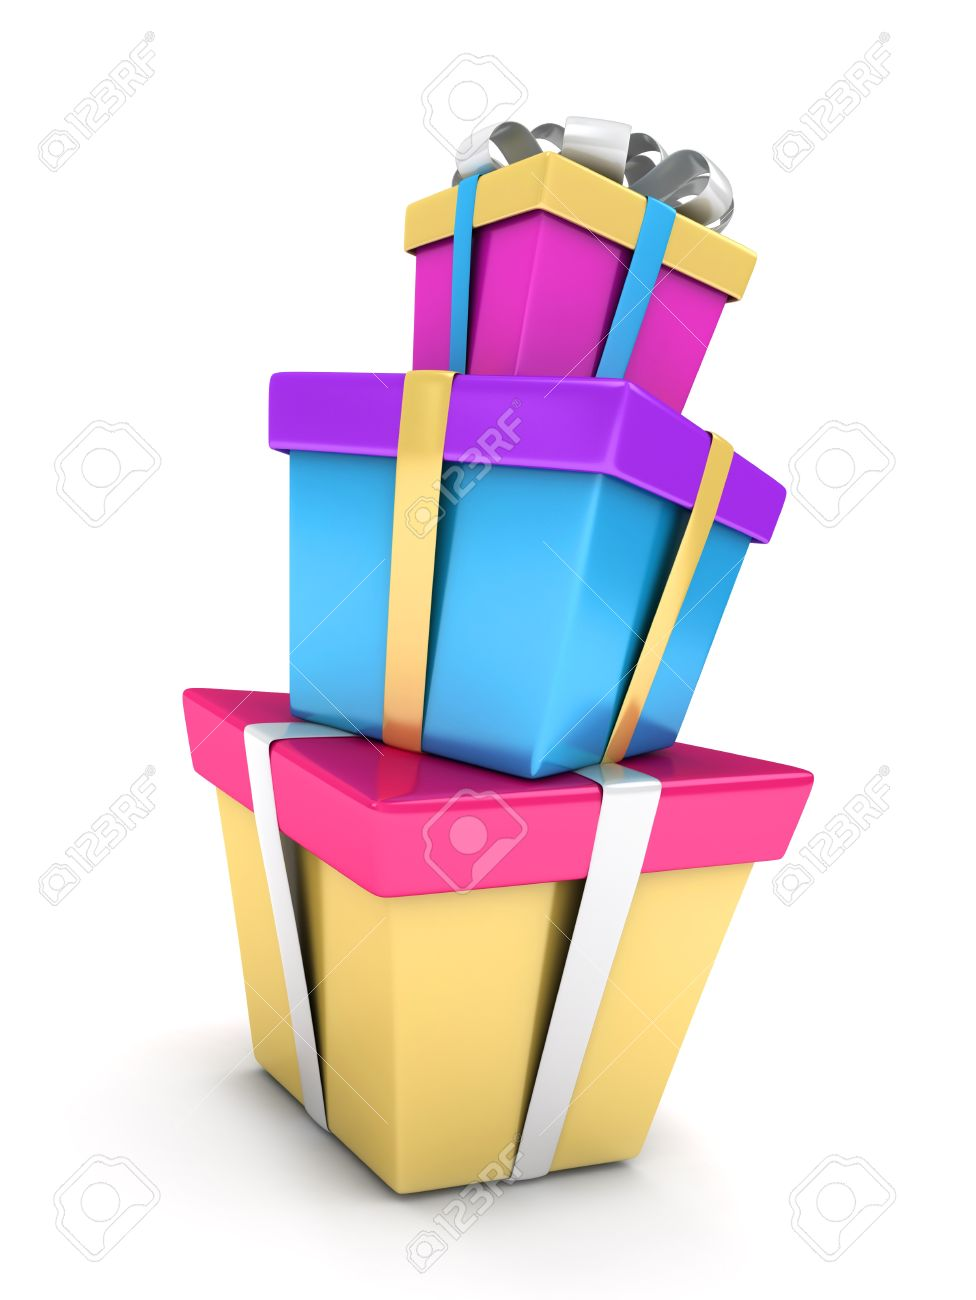 3D Illustration of a Stack of Gifts Stock Photo - 9307205